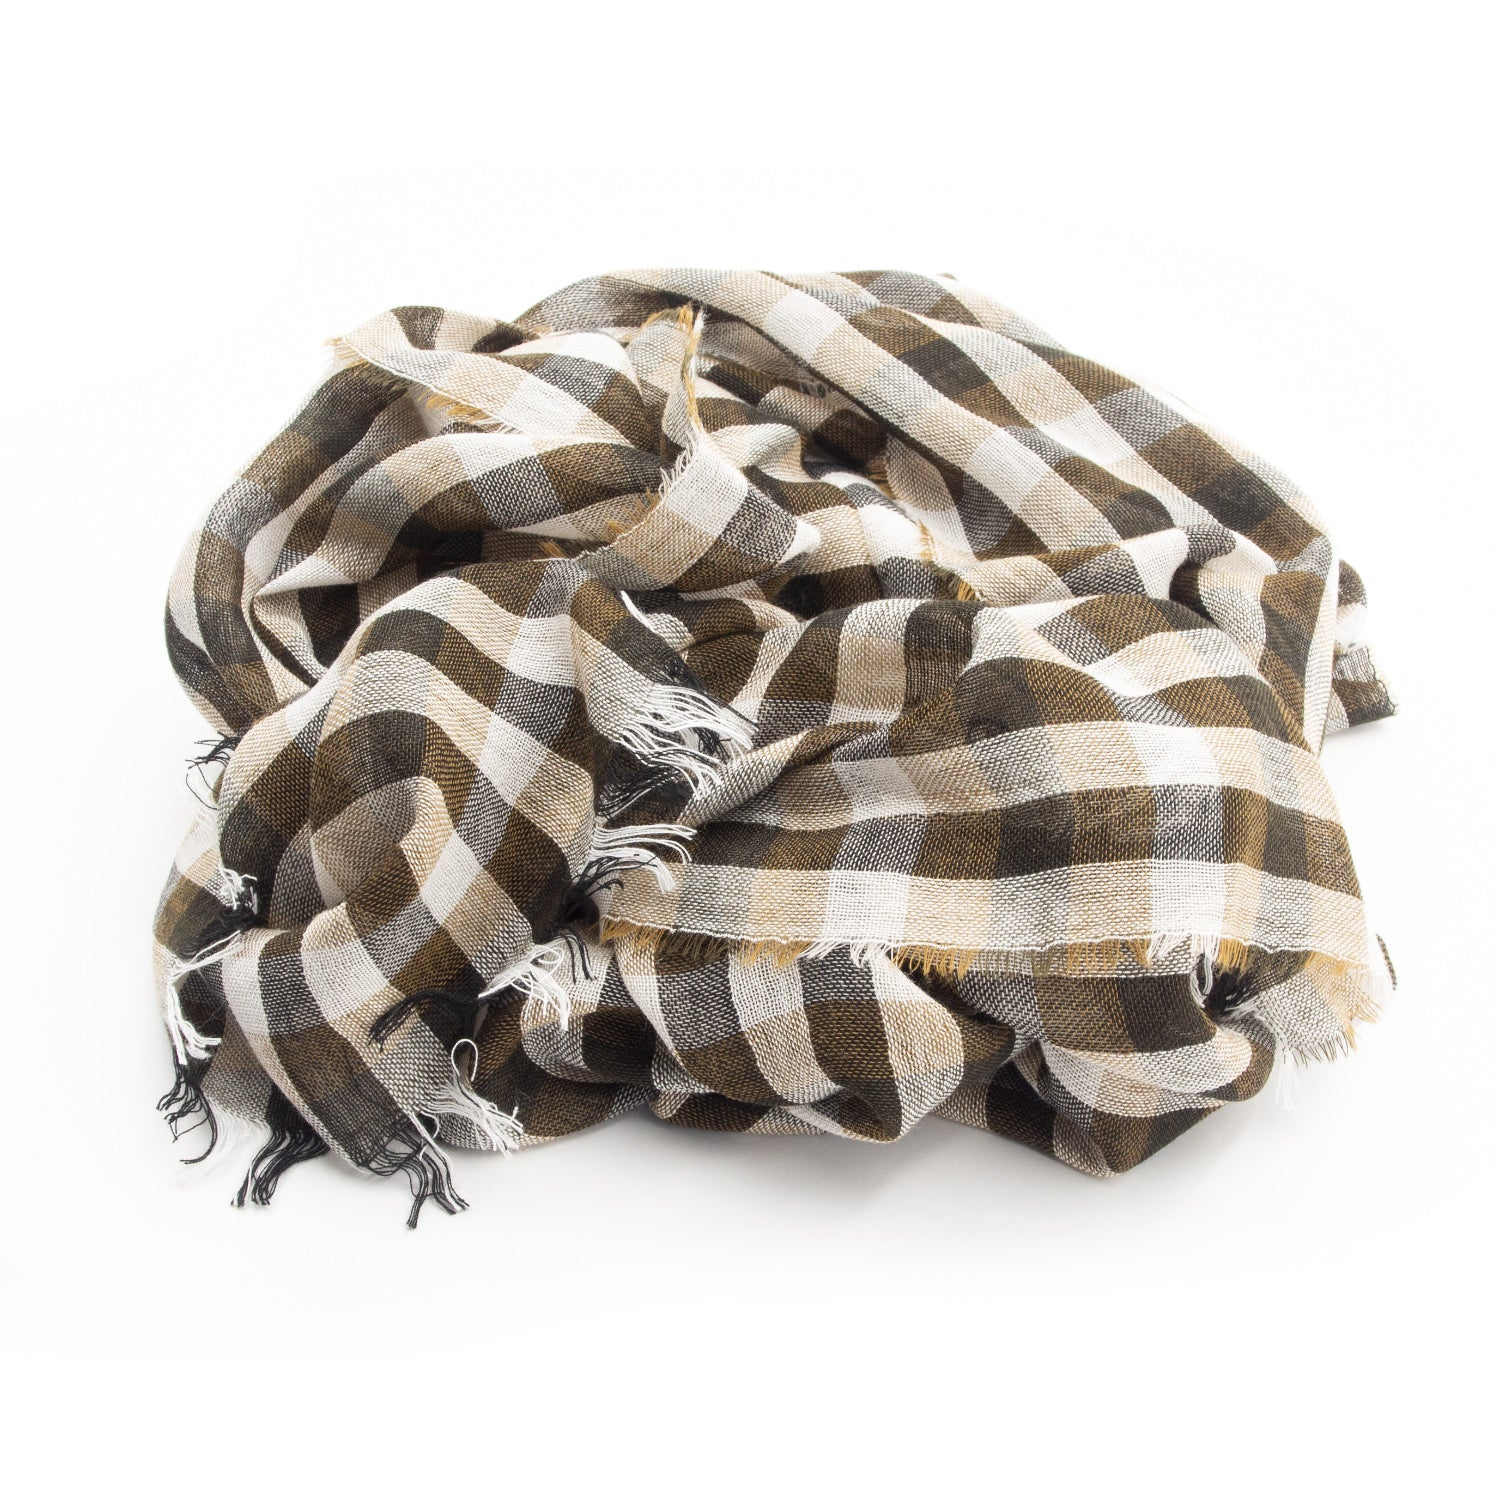 Doria & Dojola Square Virgin Wool Viscose Scarf. 55% Viscose 45% Virgin Wool 52 cm x 190 cm. 100% Made in Italy.